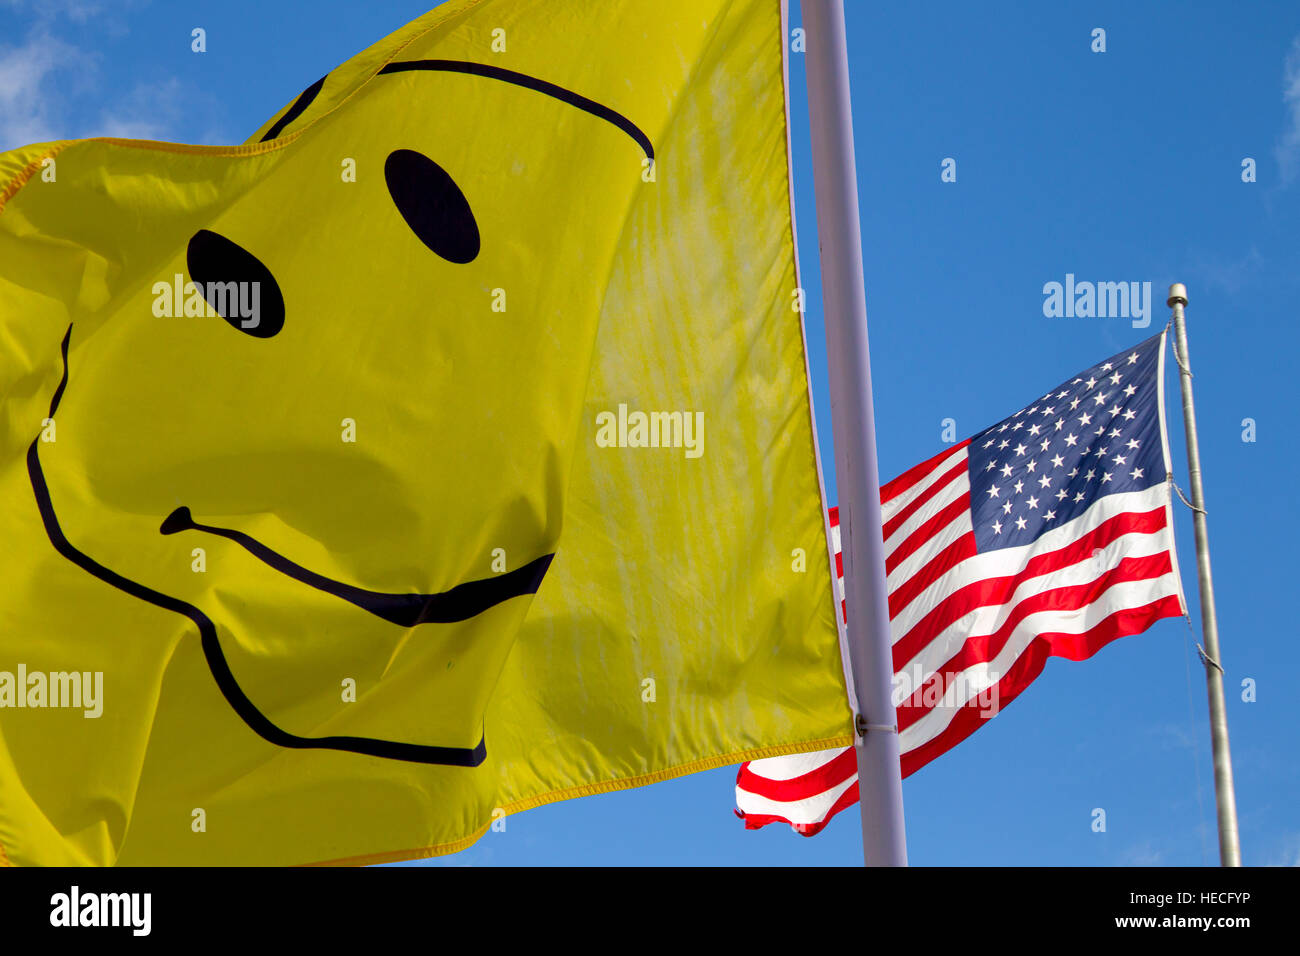 Smiley faced flag and flag of the United States of America - Stock Image